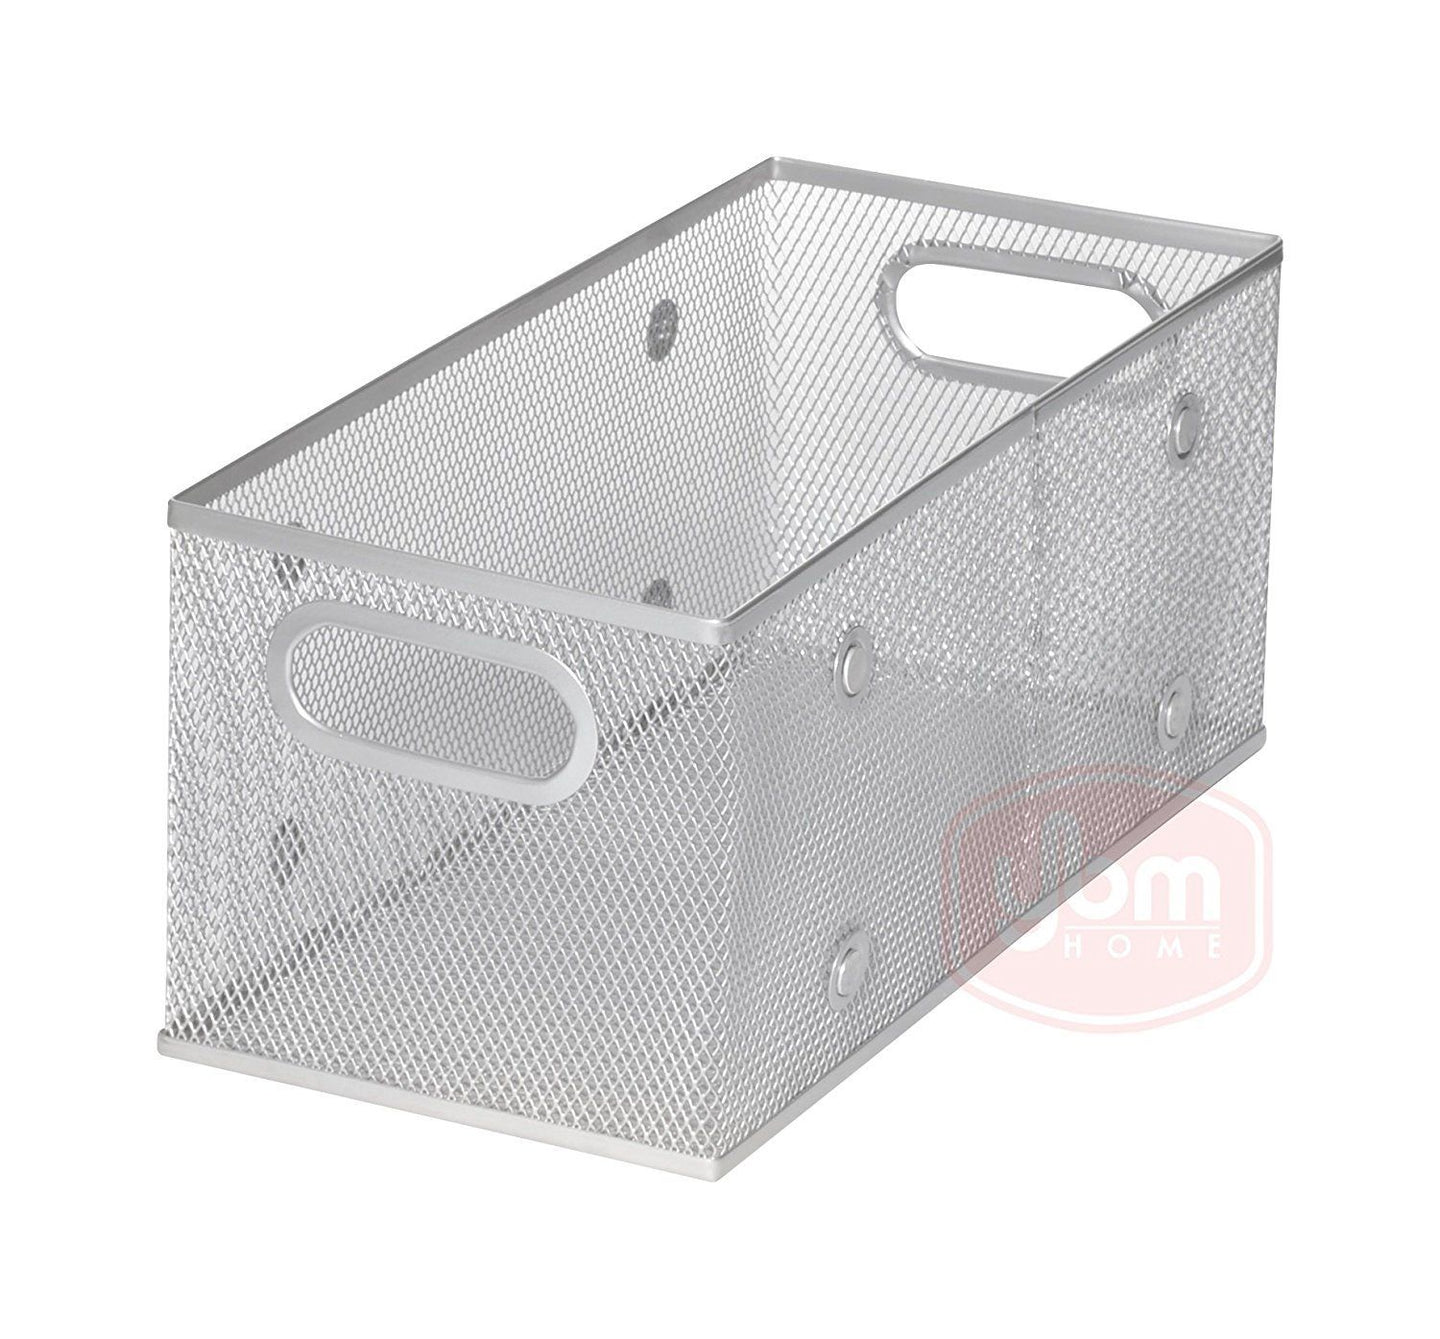 Household Wire Mesh Open Bin Shelf Storage Basket Organizer